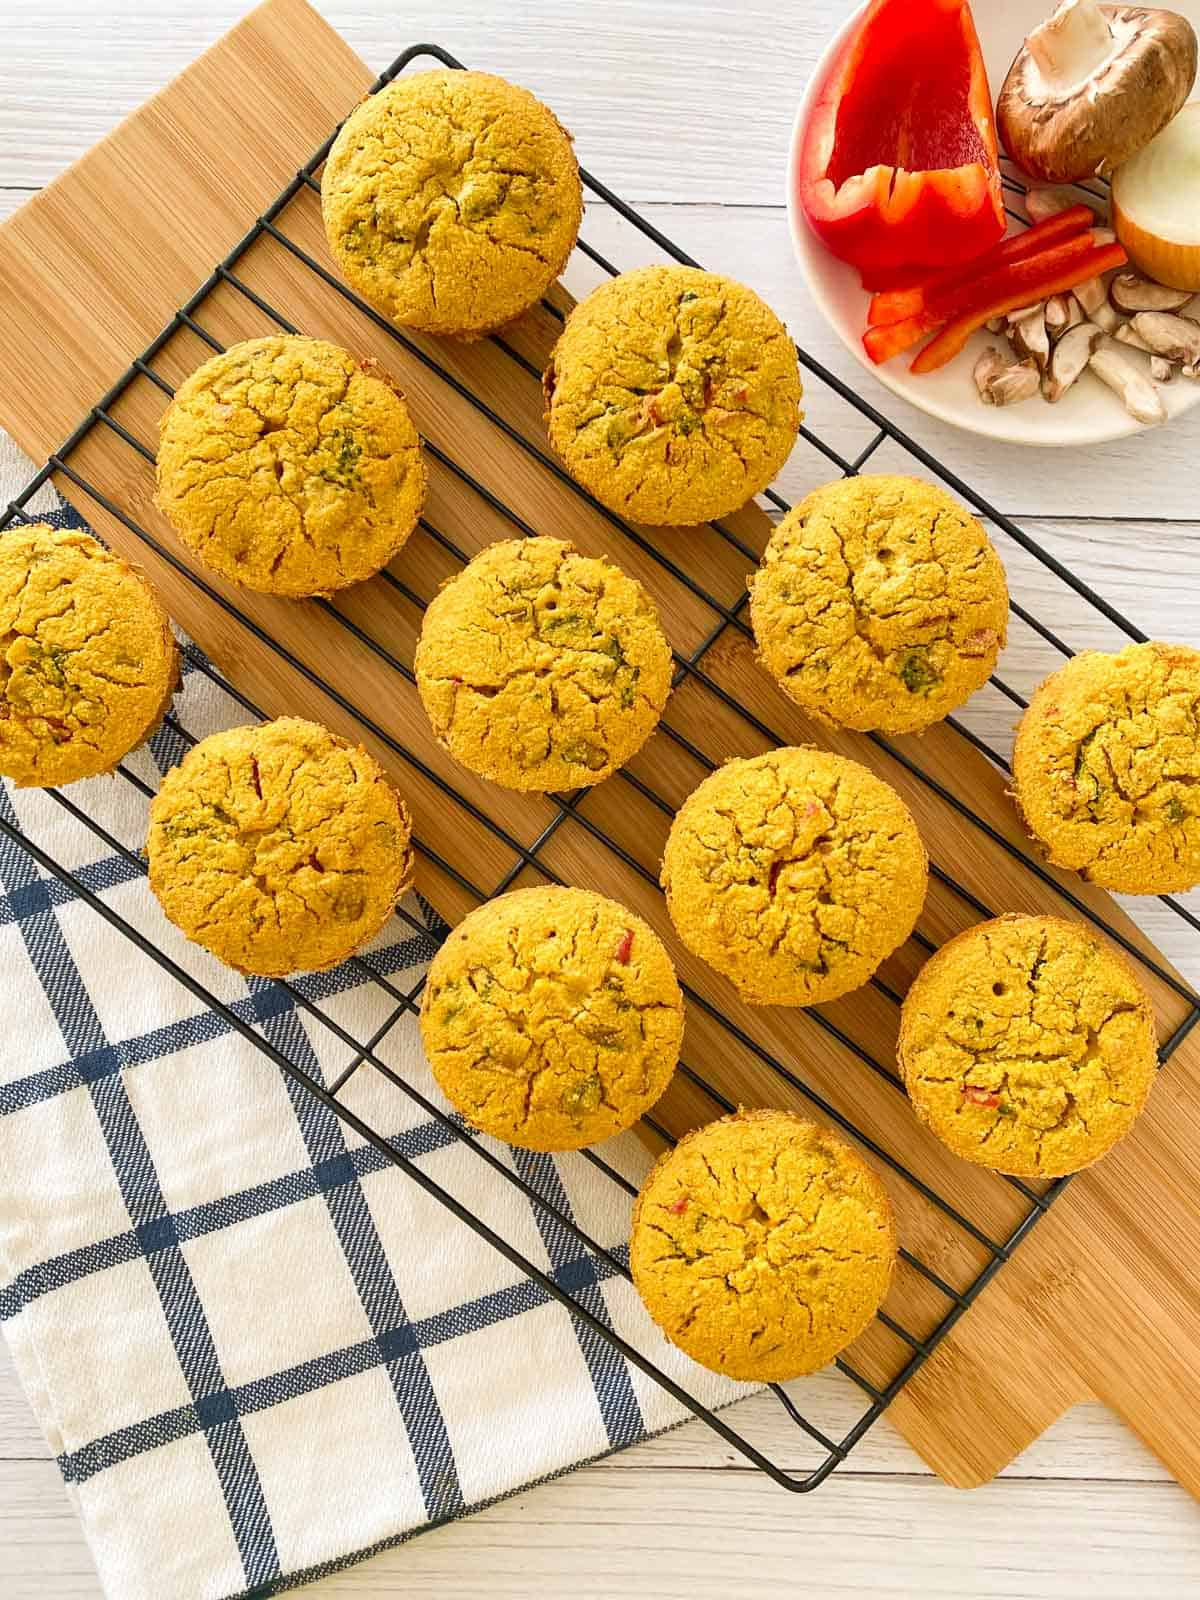 Twelve savoury muffins on cooling rack with cutting board underneath.